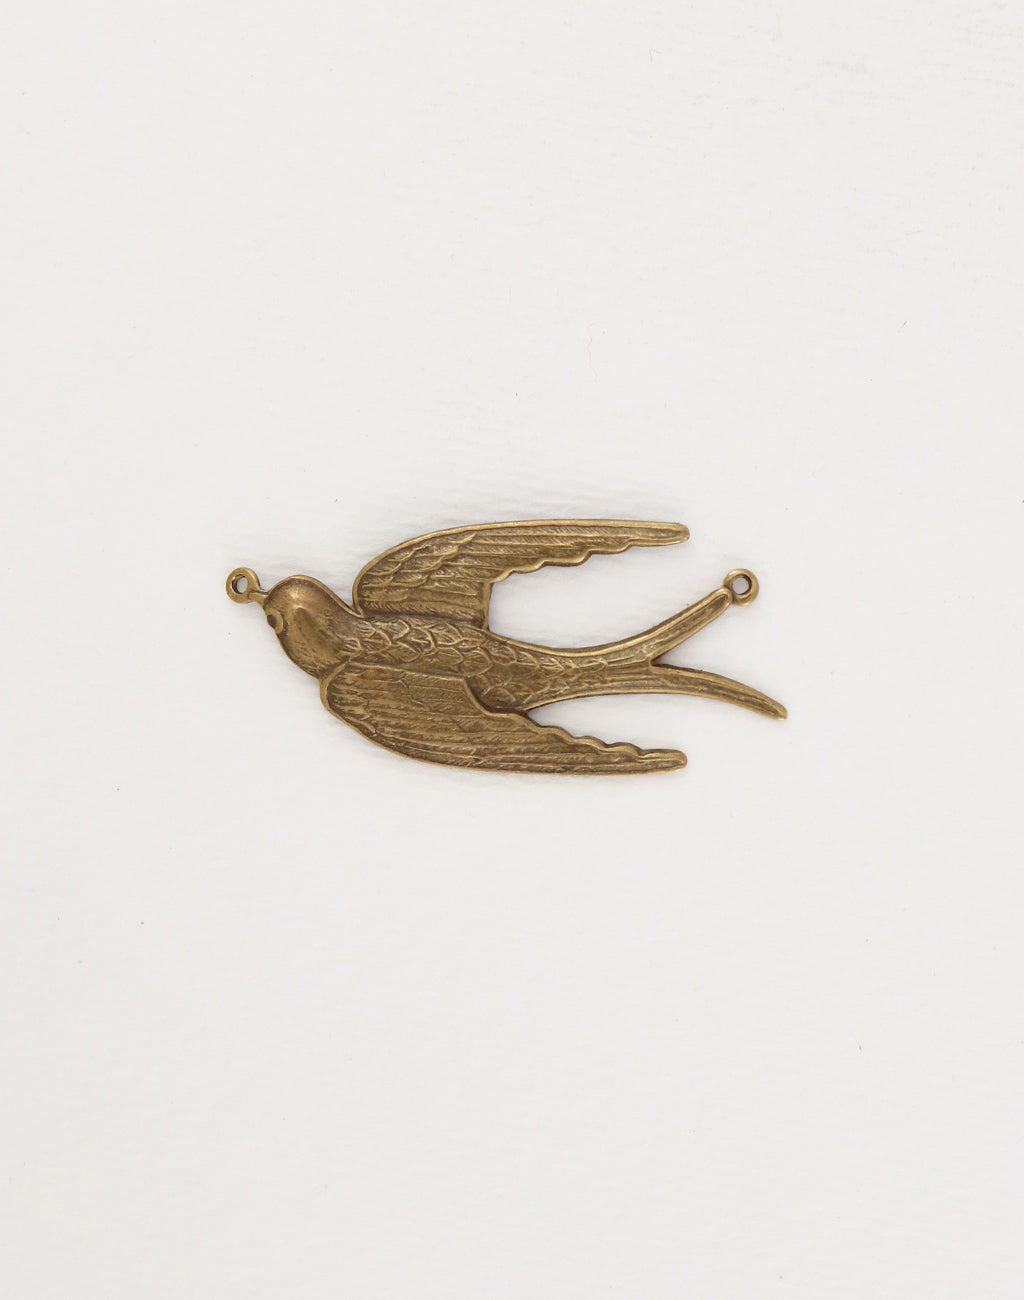 Soaring Sparrow, 41x18mm, (1pc)